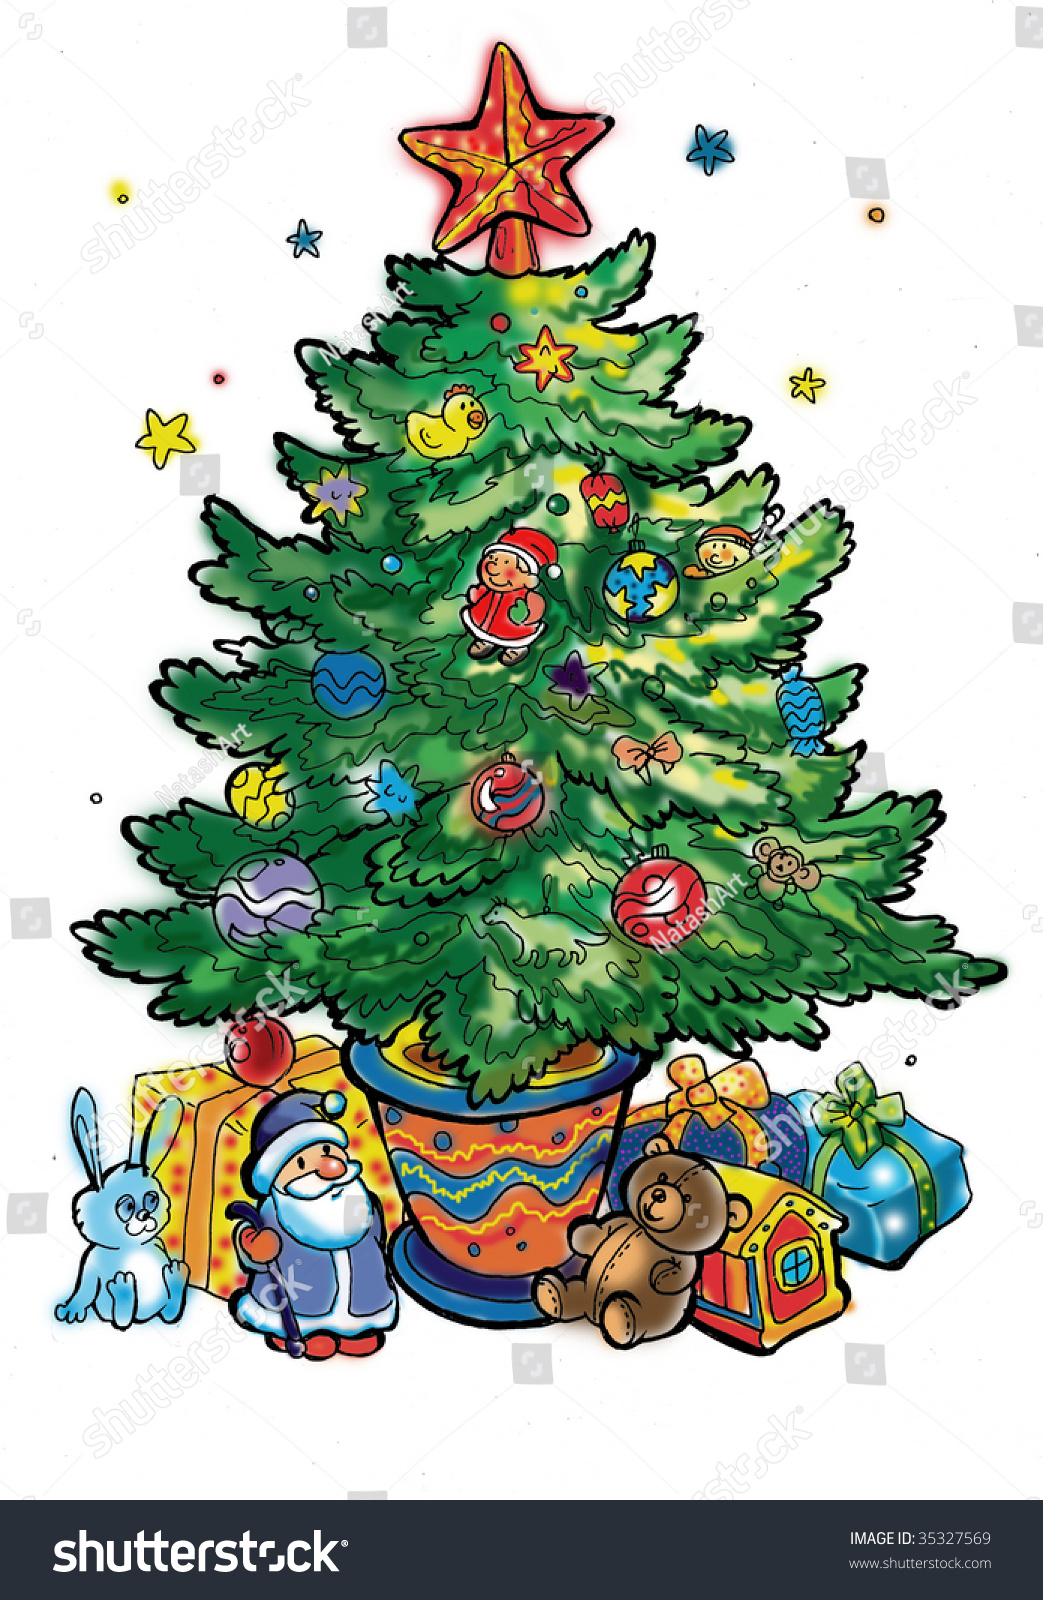 Christmas Toys Cartoon : New year tree cartoon many toys stock illustration